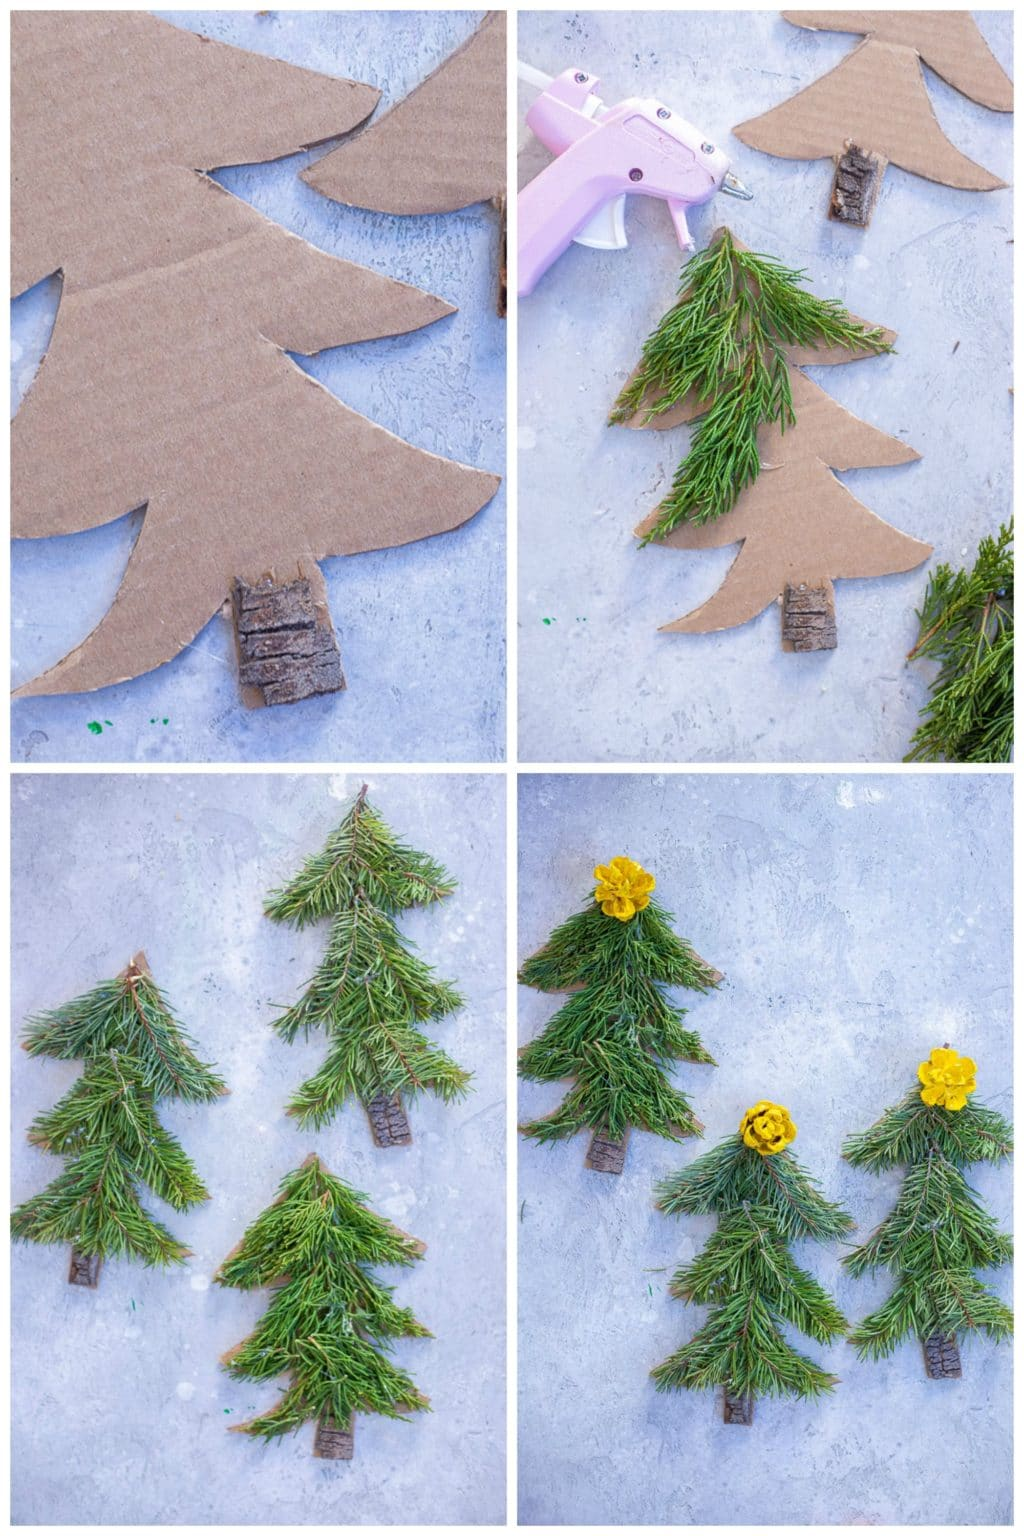 step by step photos showing how to make these Christmas tree crafts